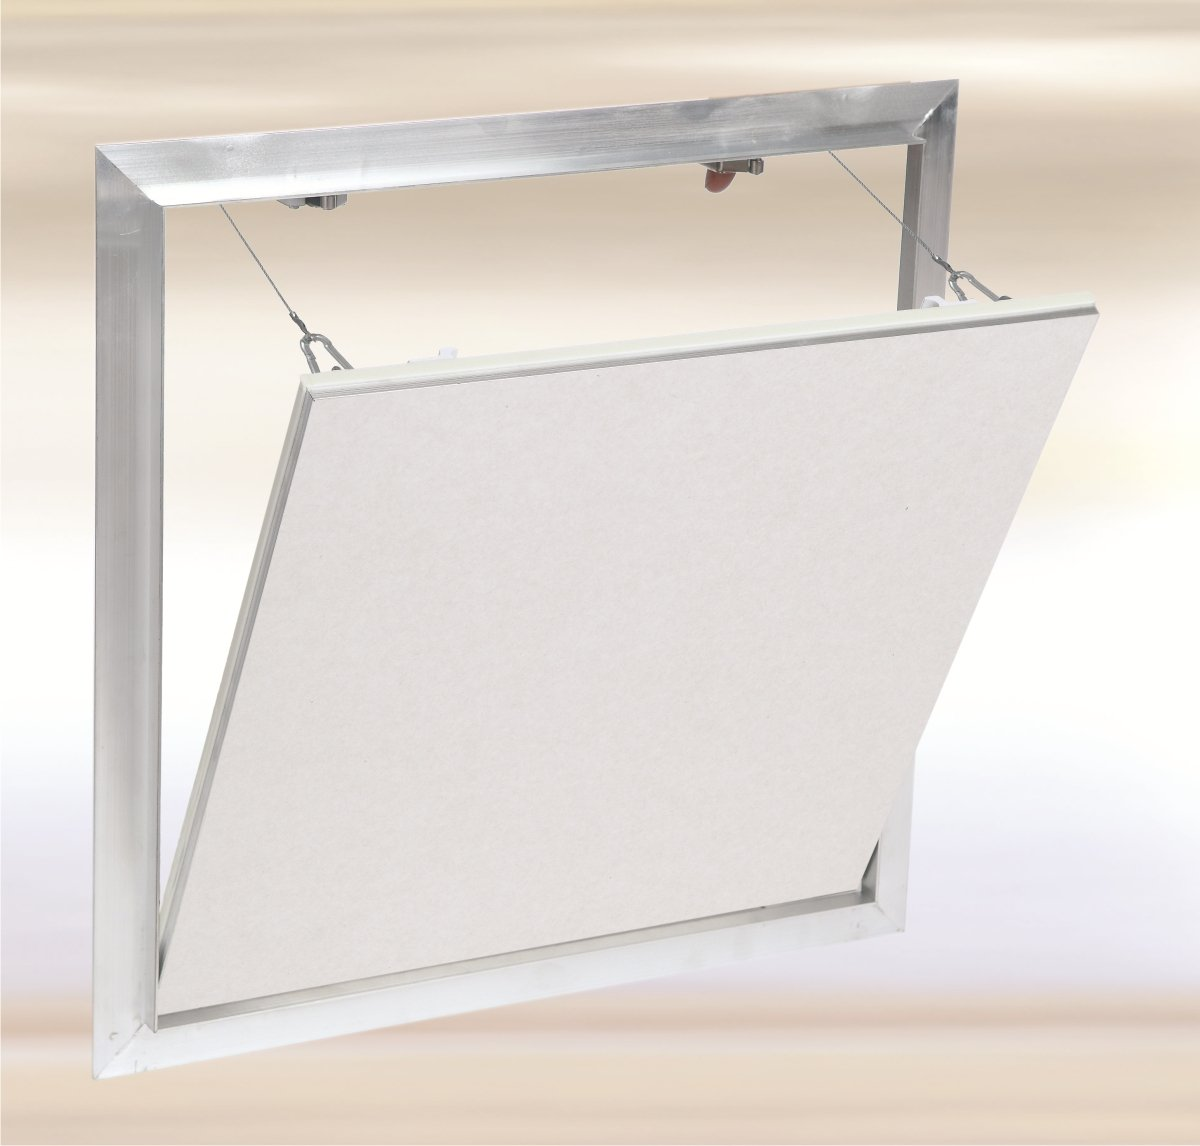 Attic Access Panel / Attic Hatch 30'' x 30'' for Icynene Classic Max for ceilings, with 5/8'' Drywall Inlay